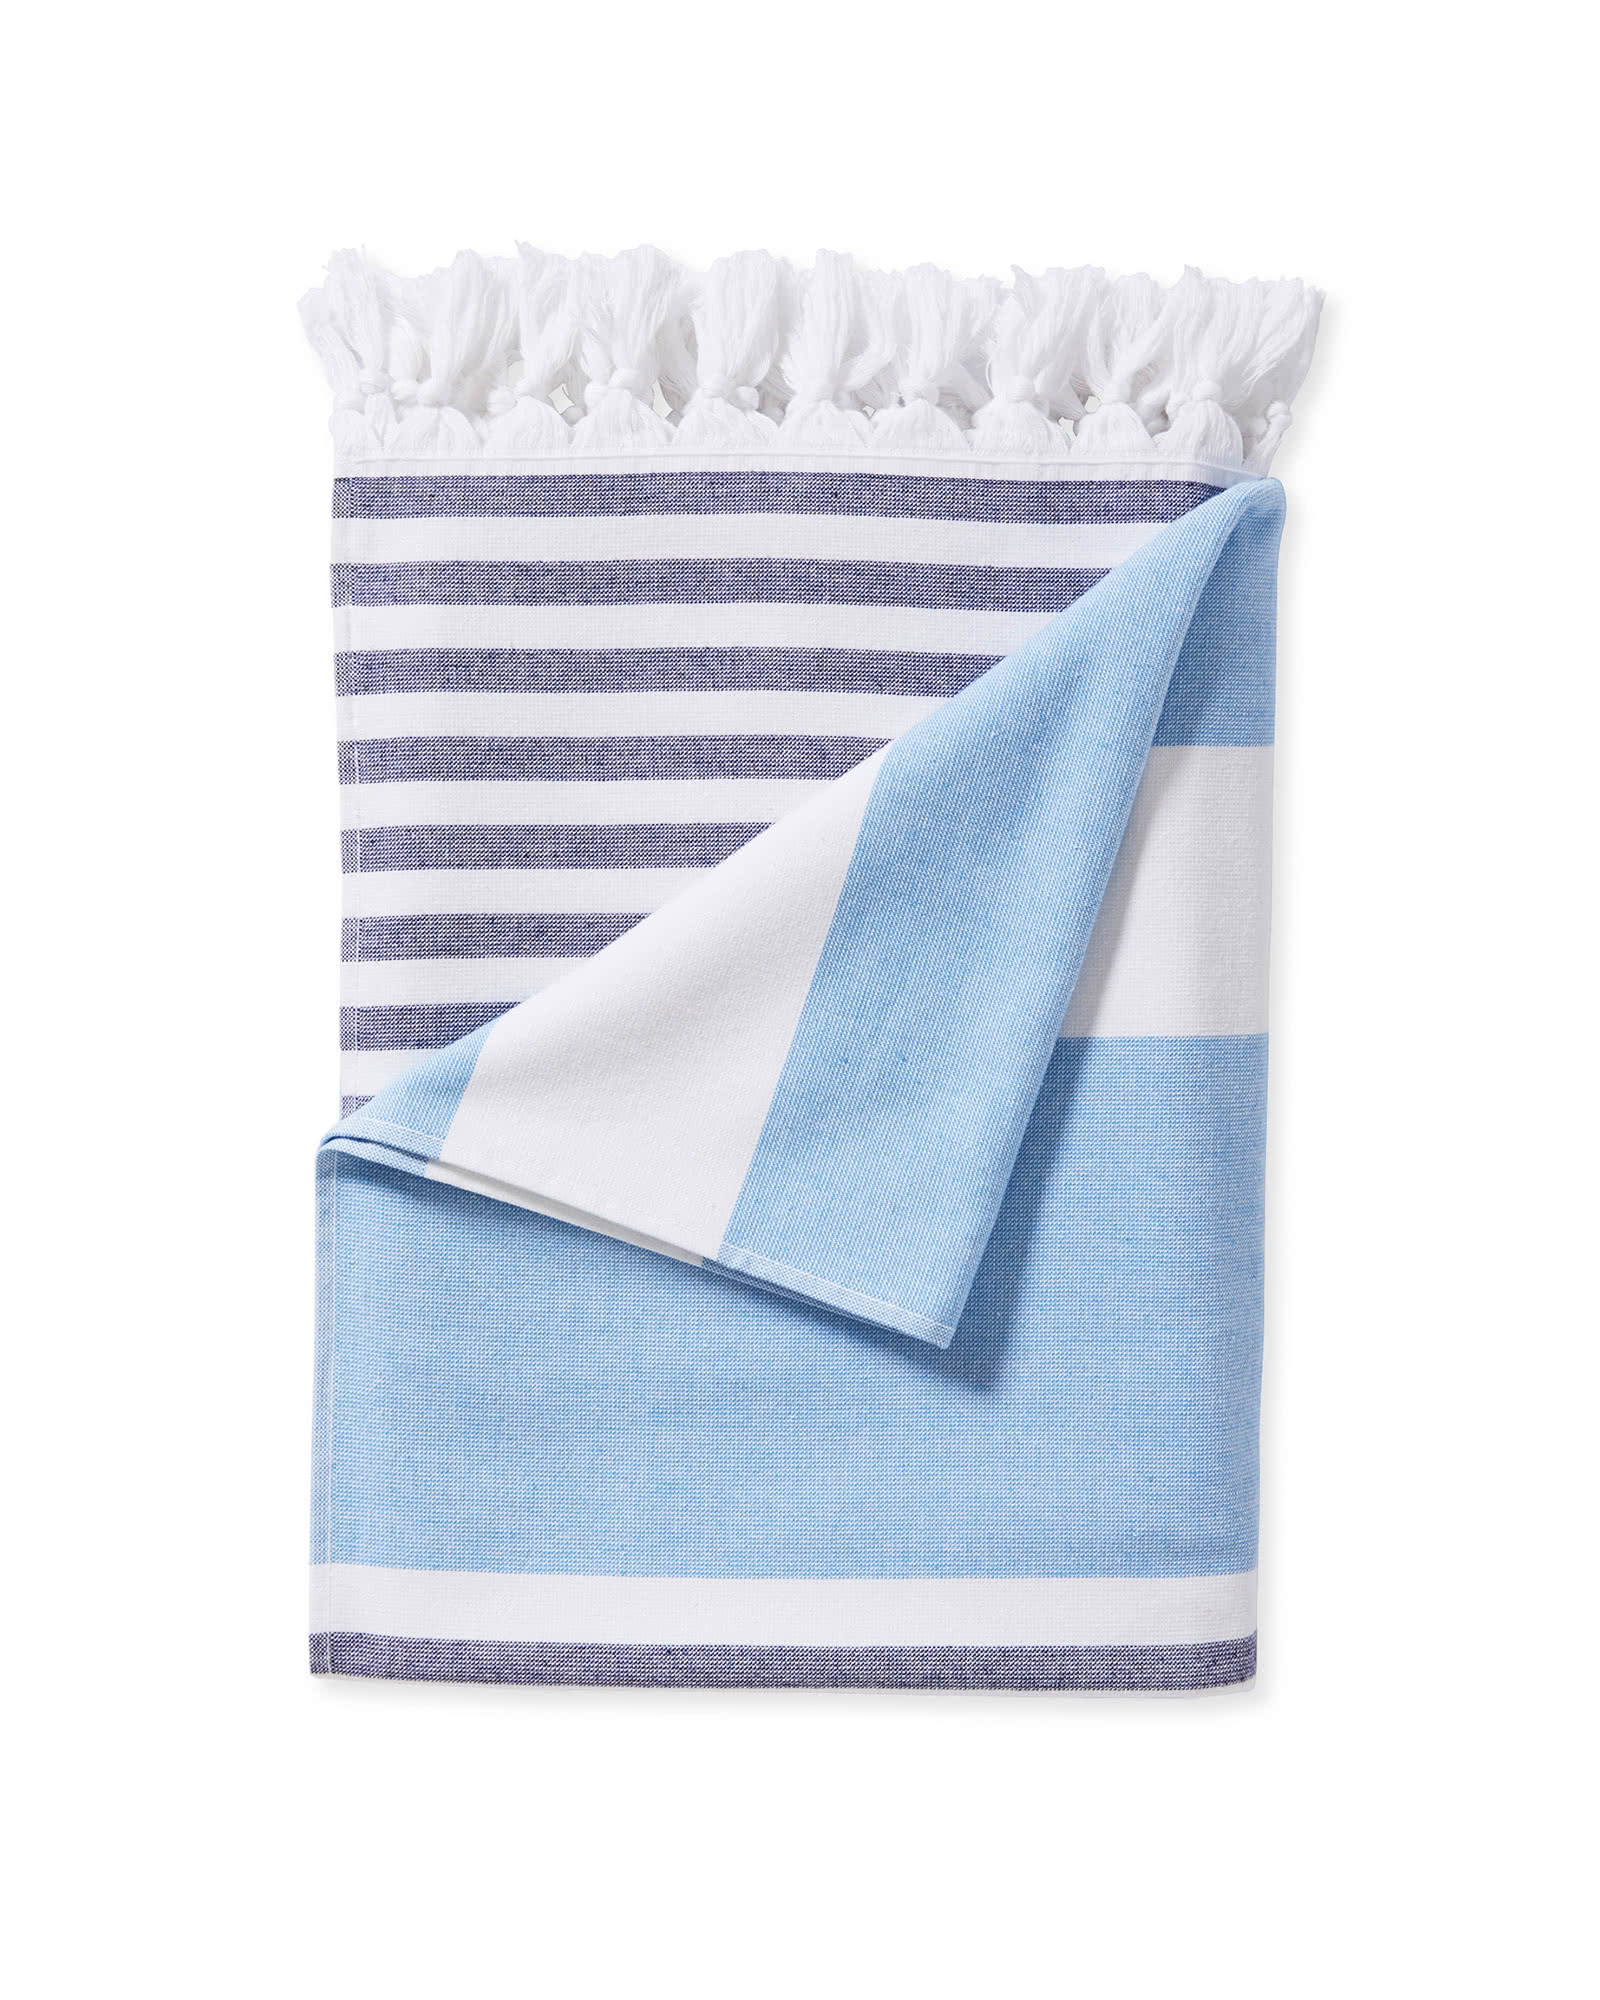 Capri Fouta Beach Towel, Harbor